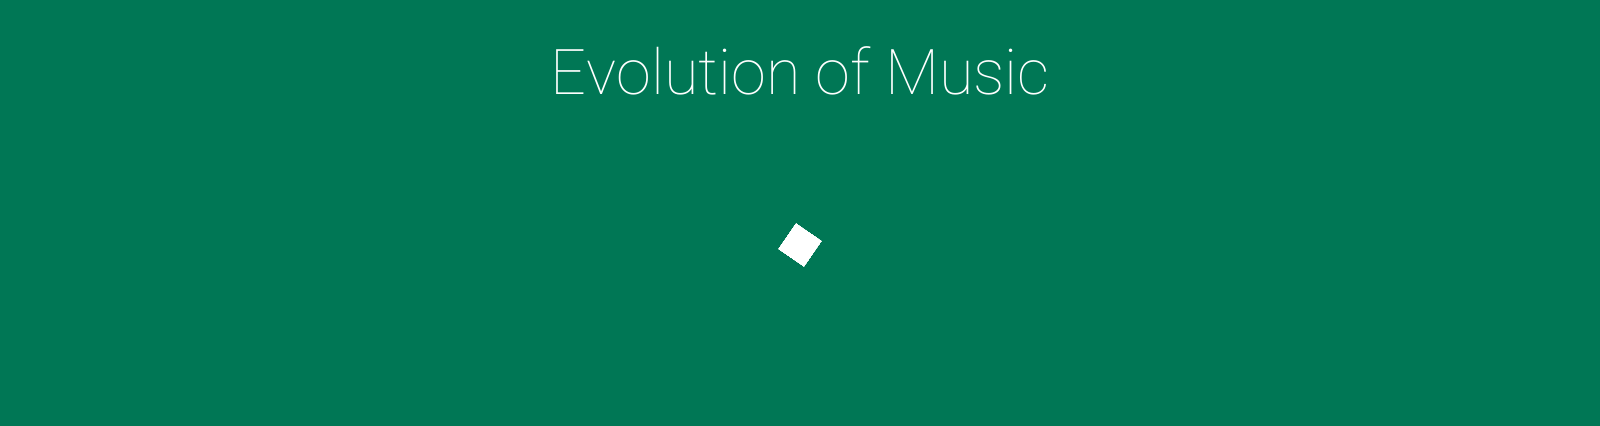 Evolution Of Music